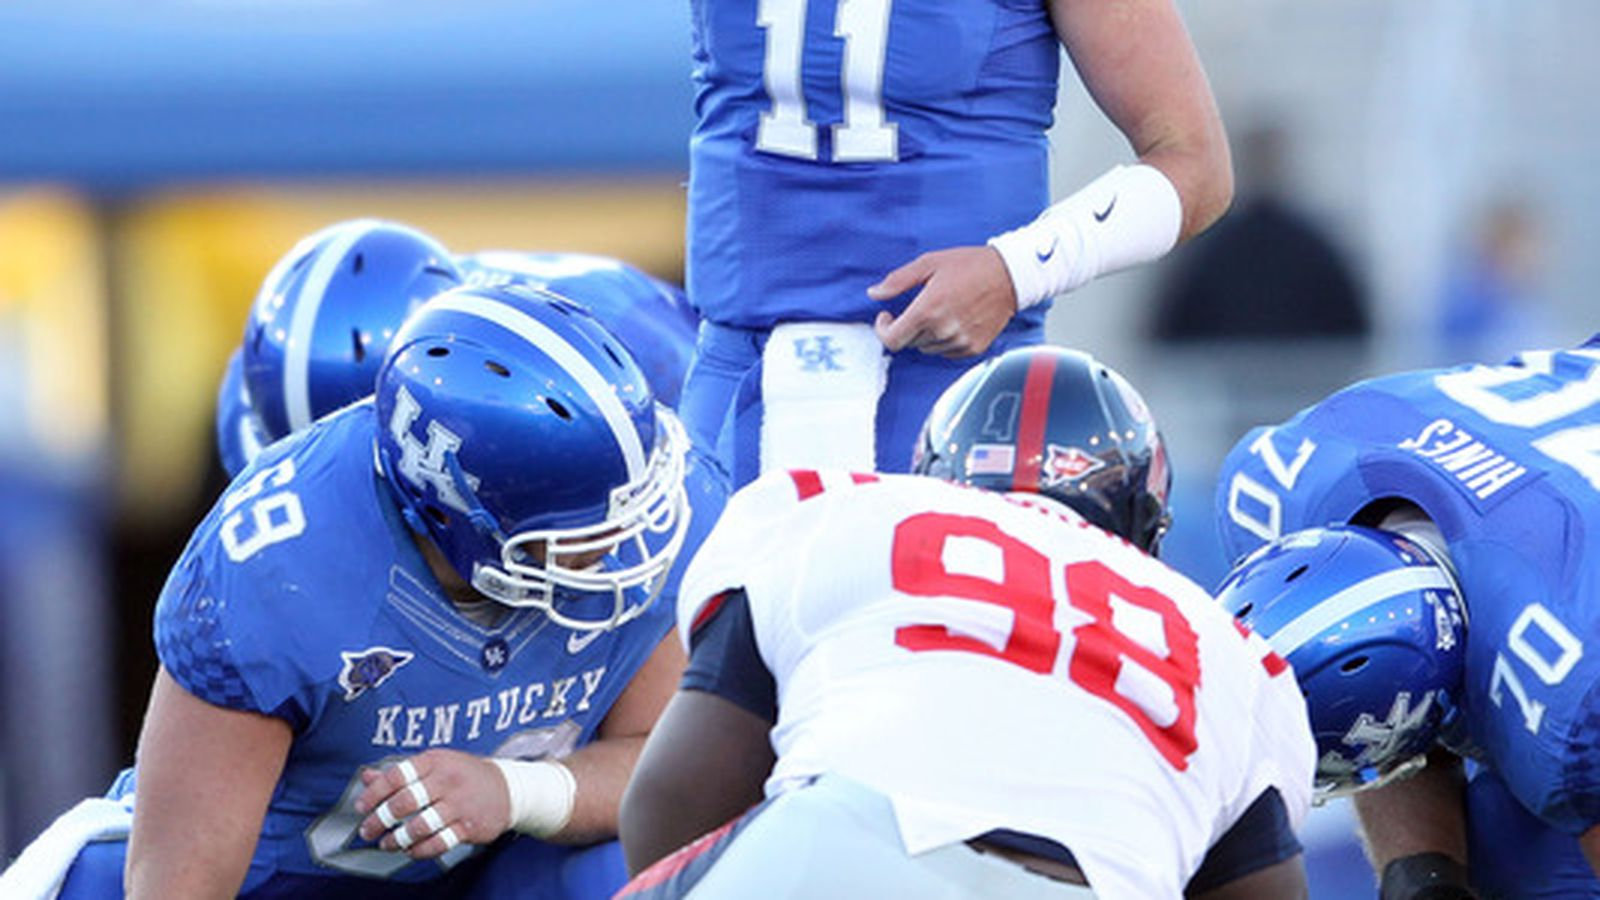 Kentucky Basketball Preview Wildcats Will Be Elite Again: Kentucky Wildcat Football: Blue-White Game Preview